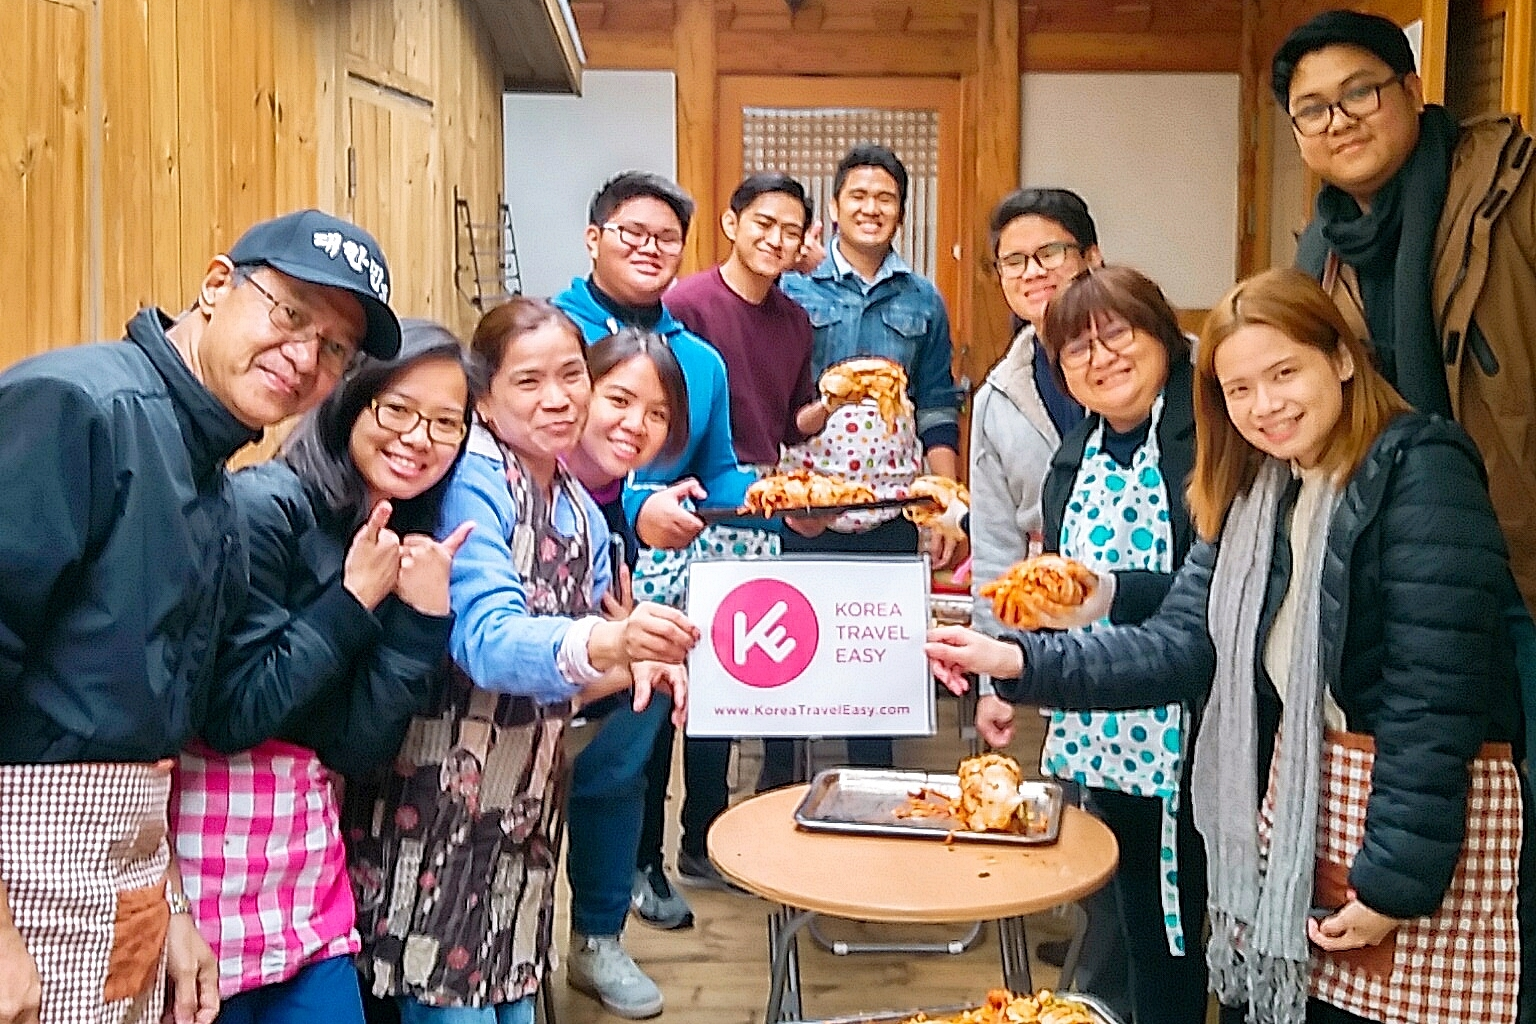 koreatraveleasy-with-customers